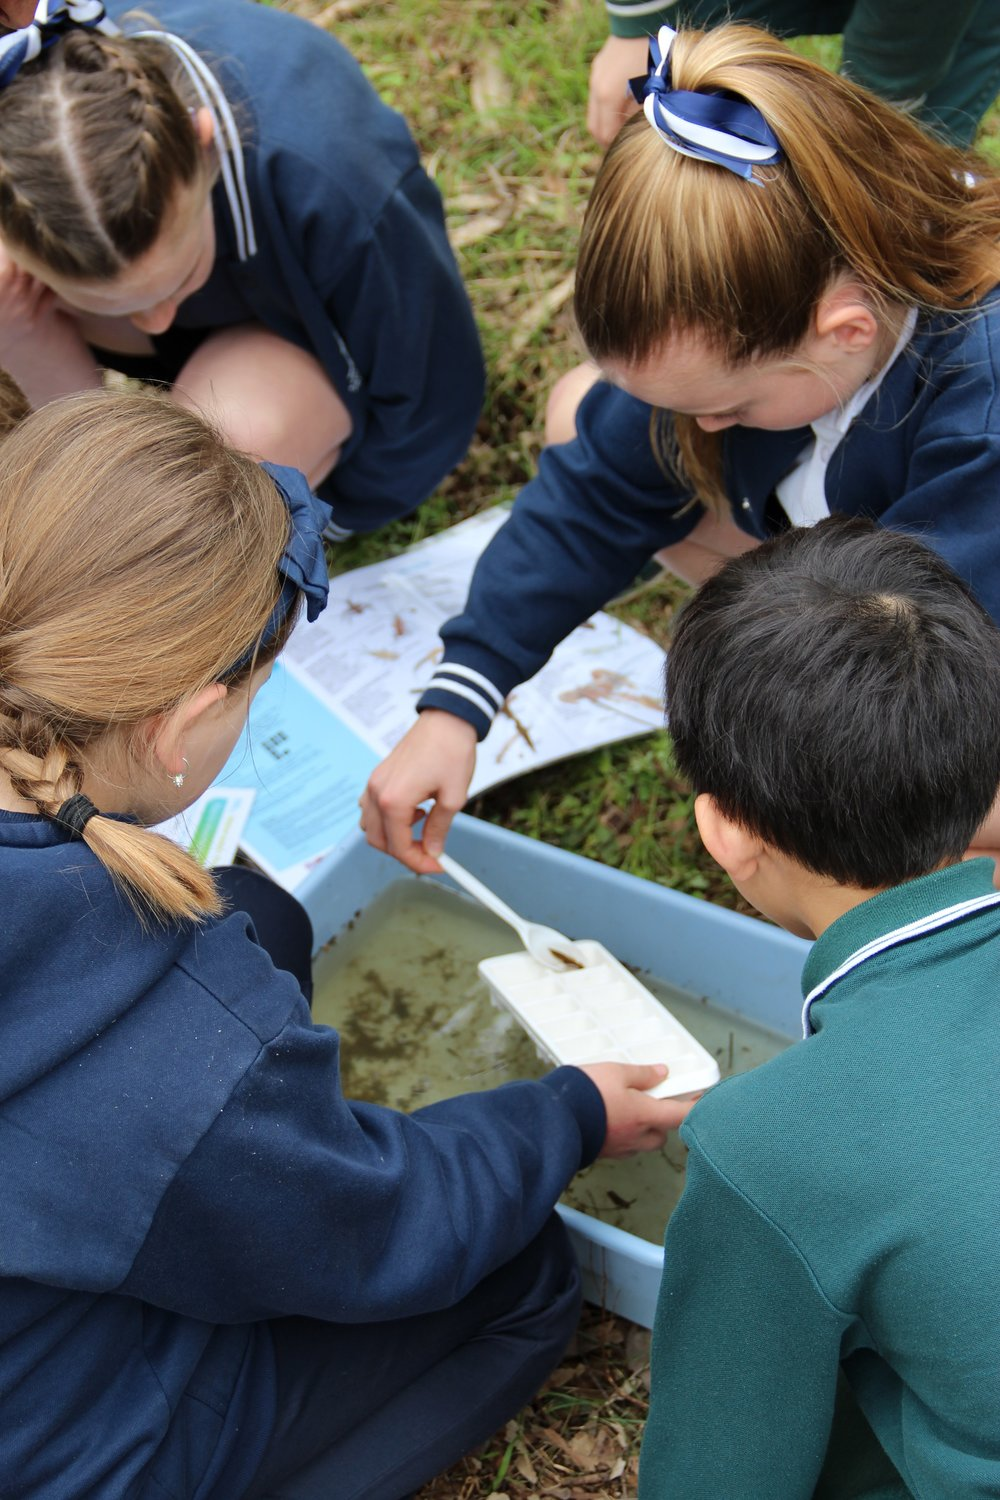 Children looking at water bugs in Currawong Bush Park.  Image: Shaun Blackburn